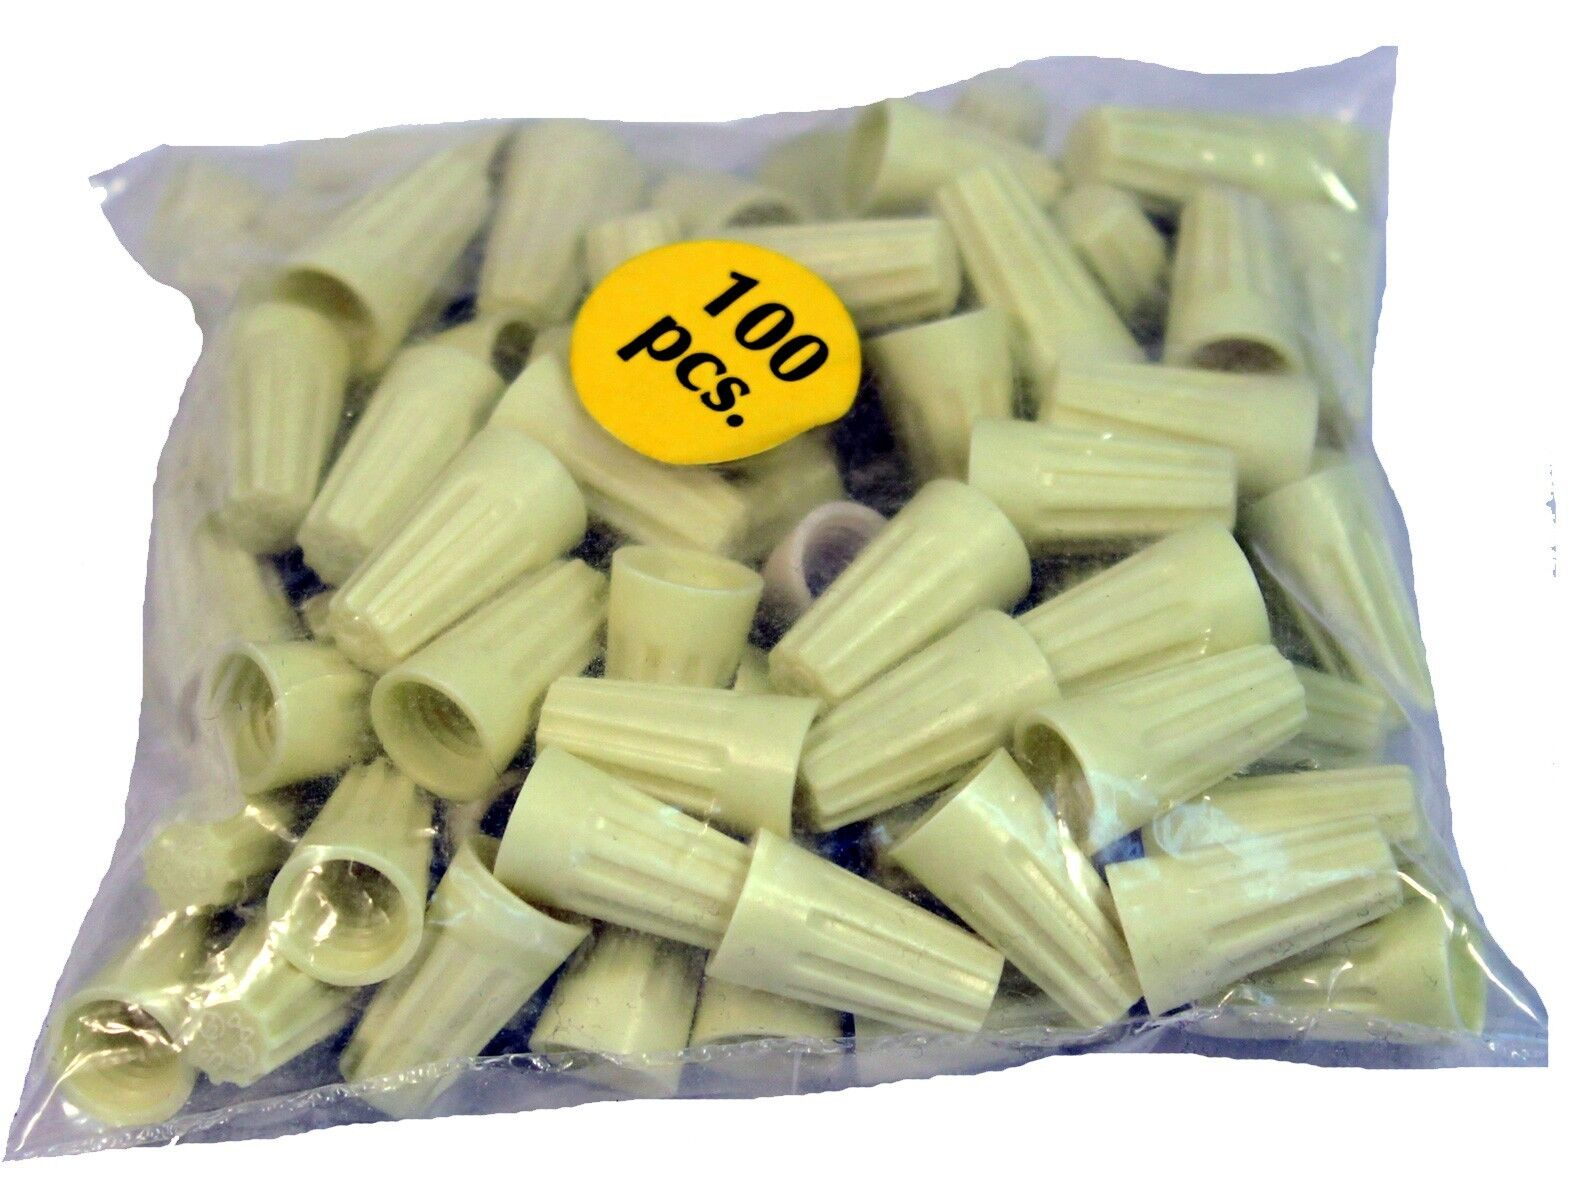 100 Thermoplastic Medium Wire Connector Nuts for 3-4 Wires, Lamp Parts Business & Industrial